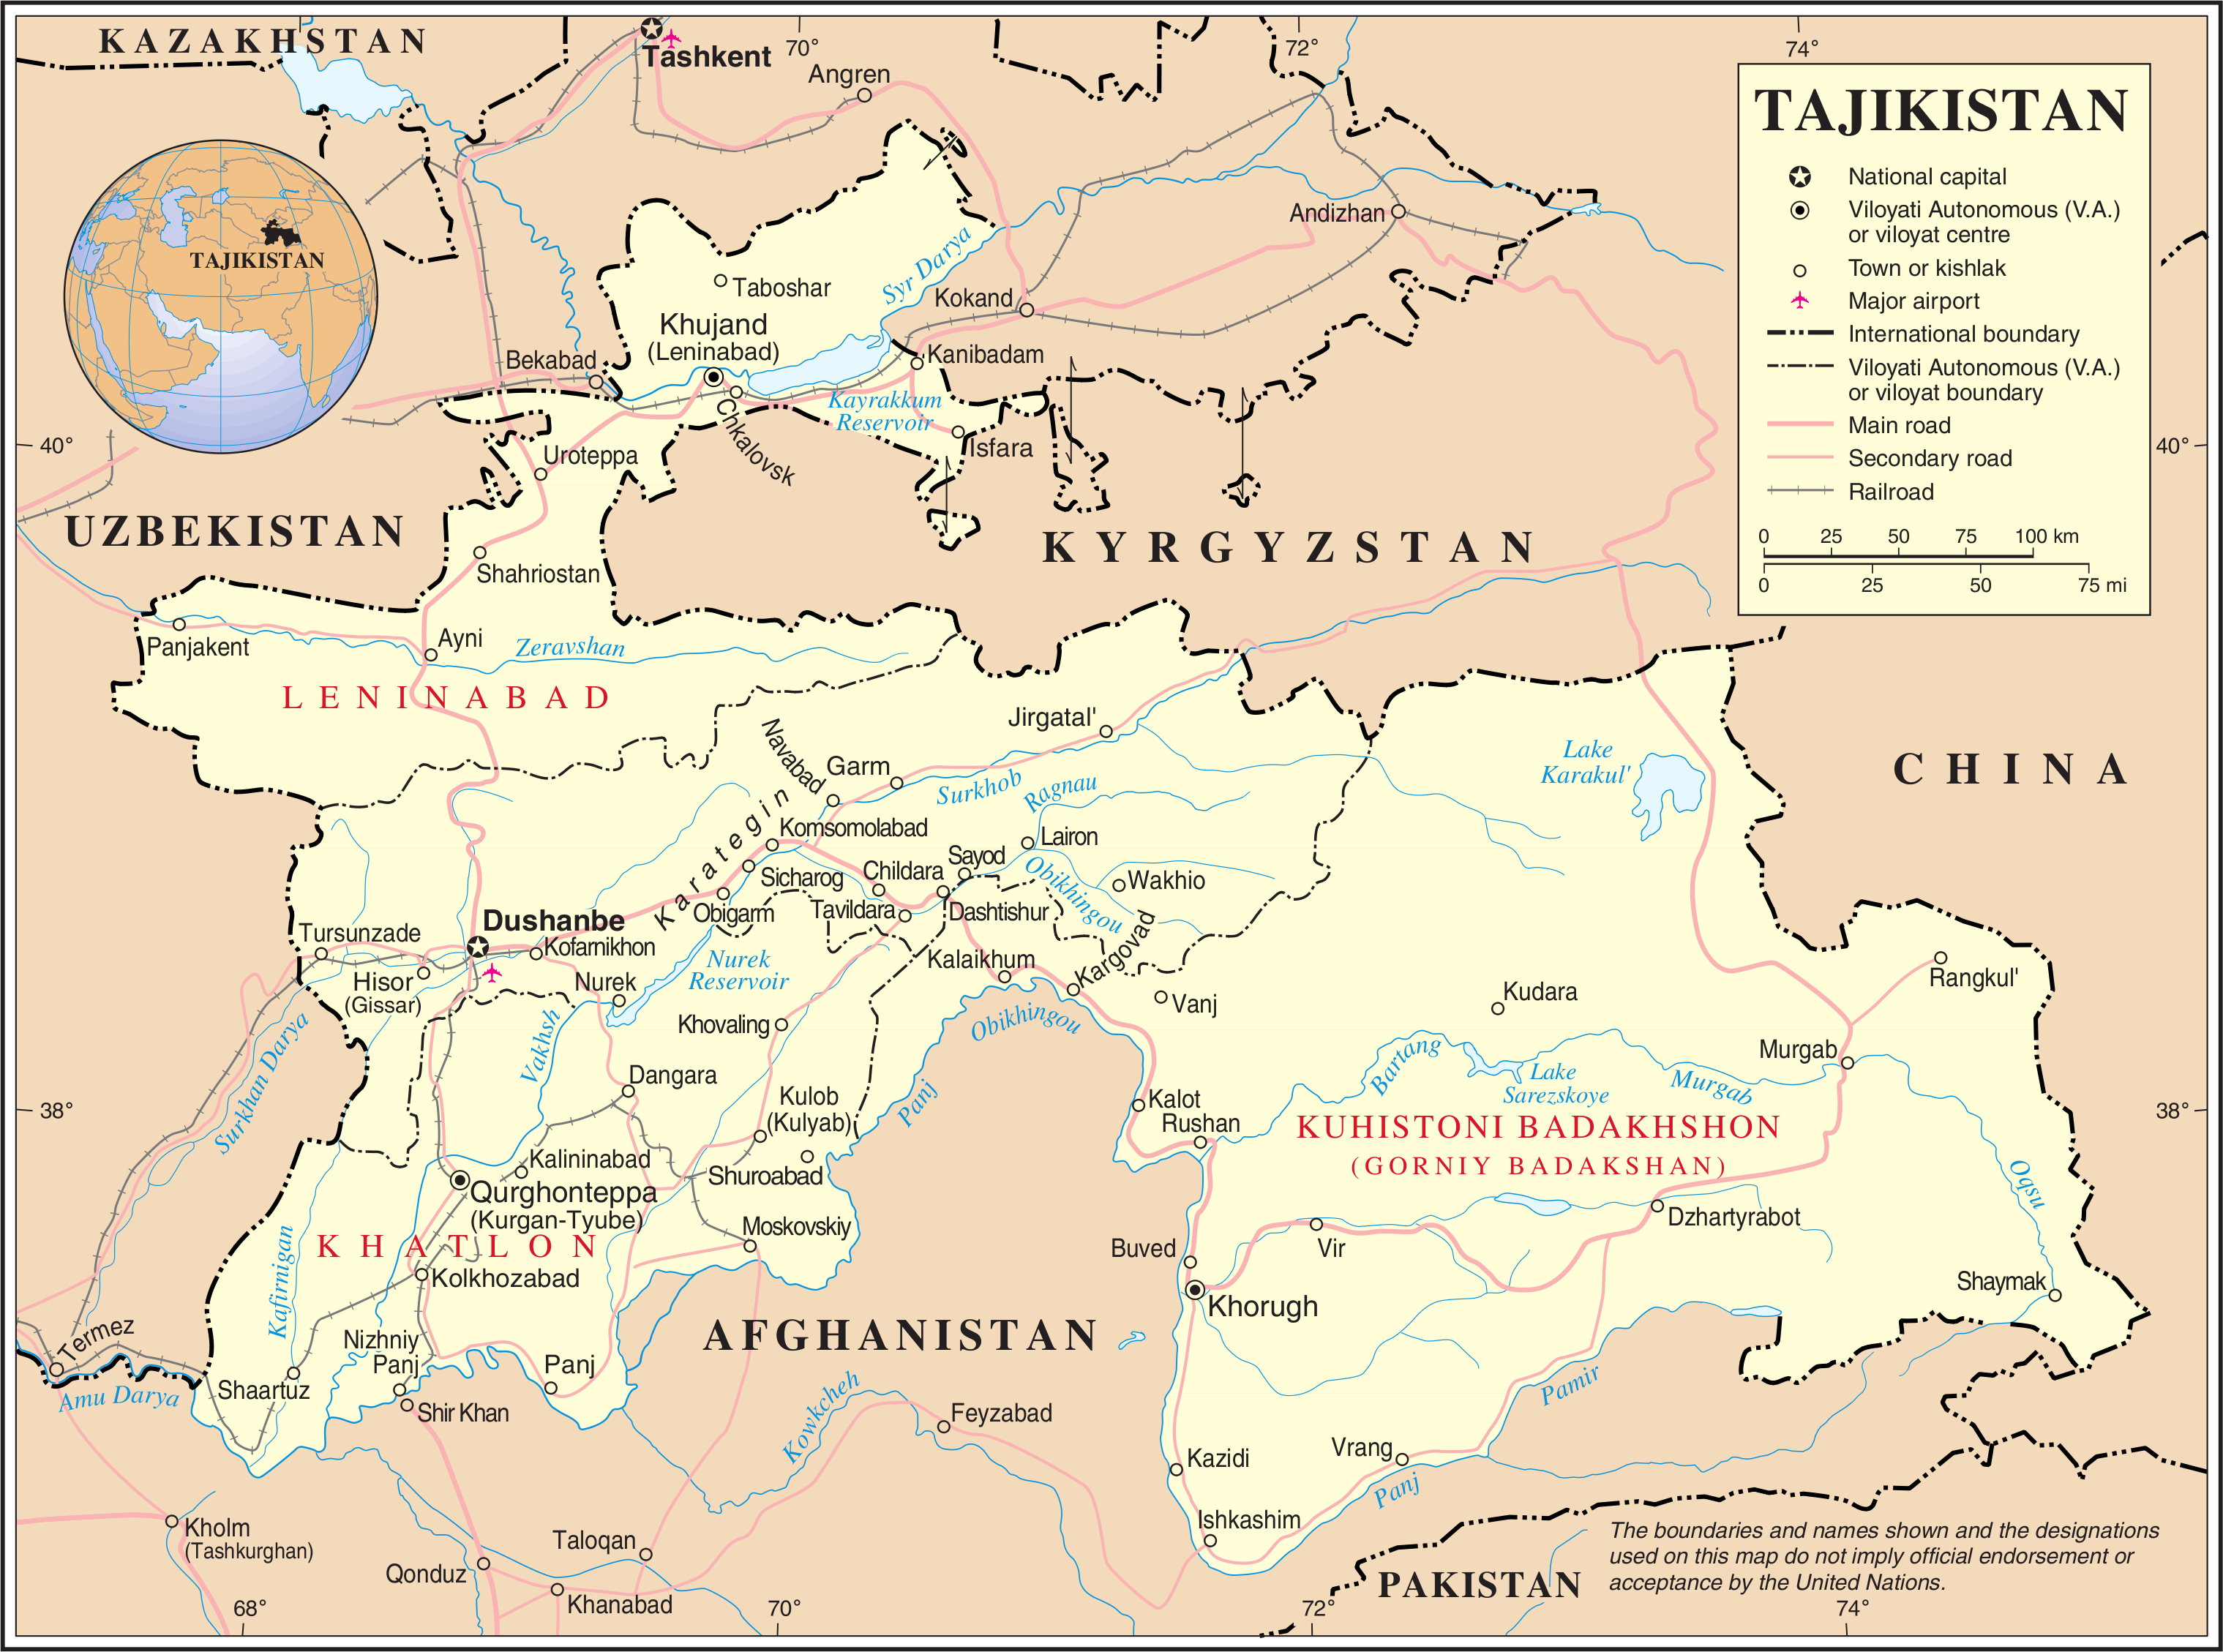 Tajikistan Islamic Renaissance Party Executives Detained The - Middle east map dushanbe